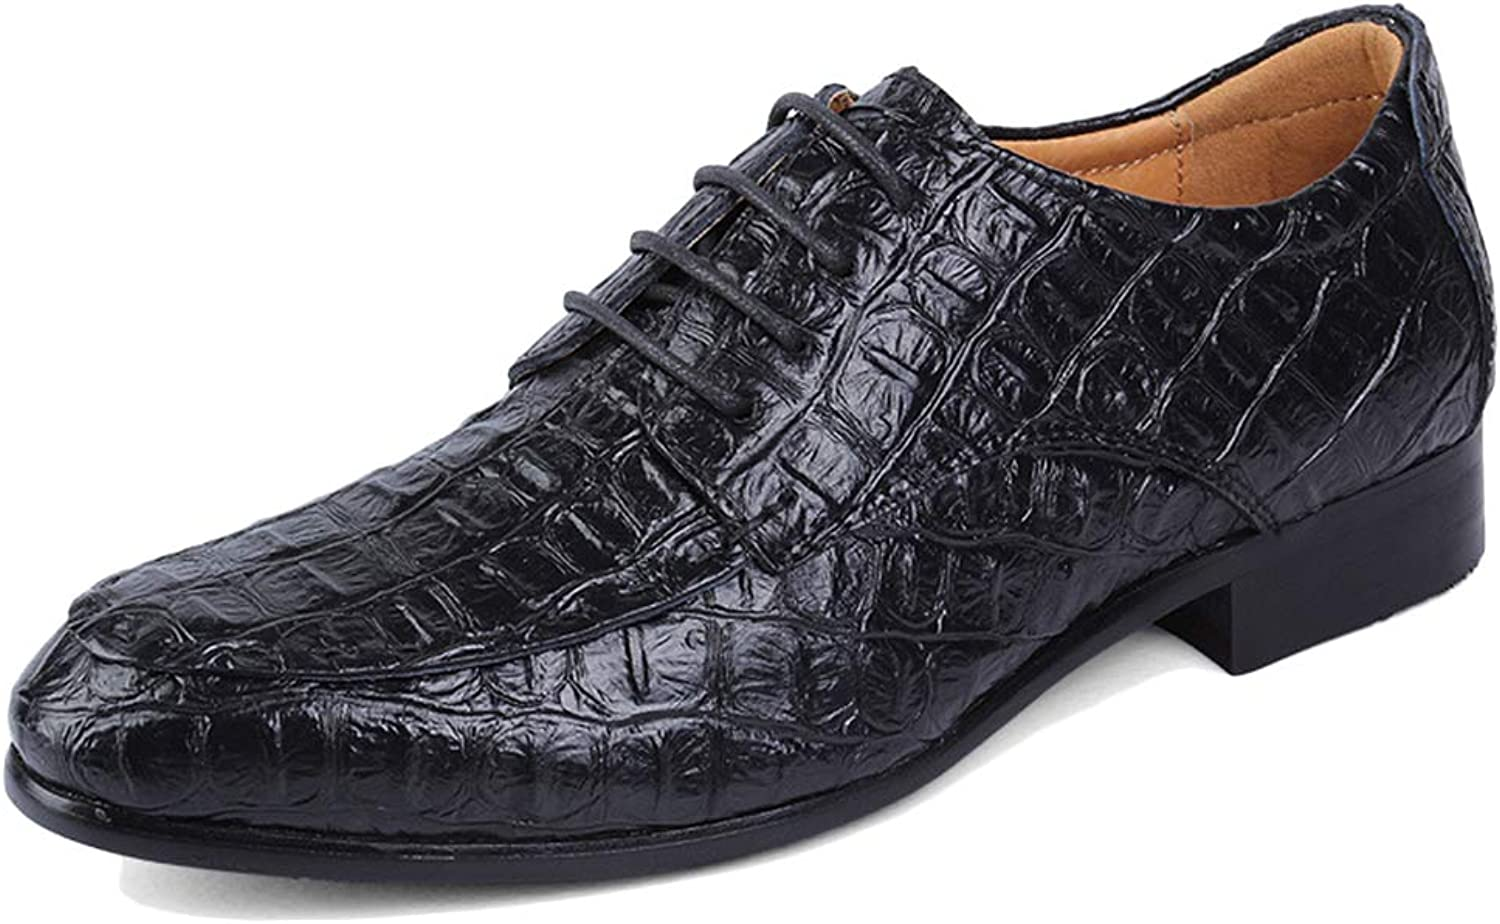 K-Flame Crocodile Pattern Formal Dress shoes for Mens Business Large Size Leather shoes Wedding Work Utility Footwear